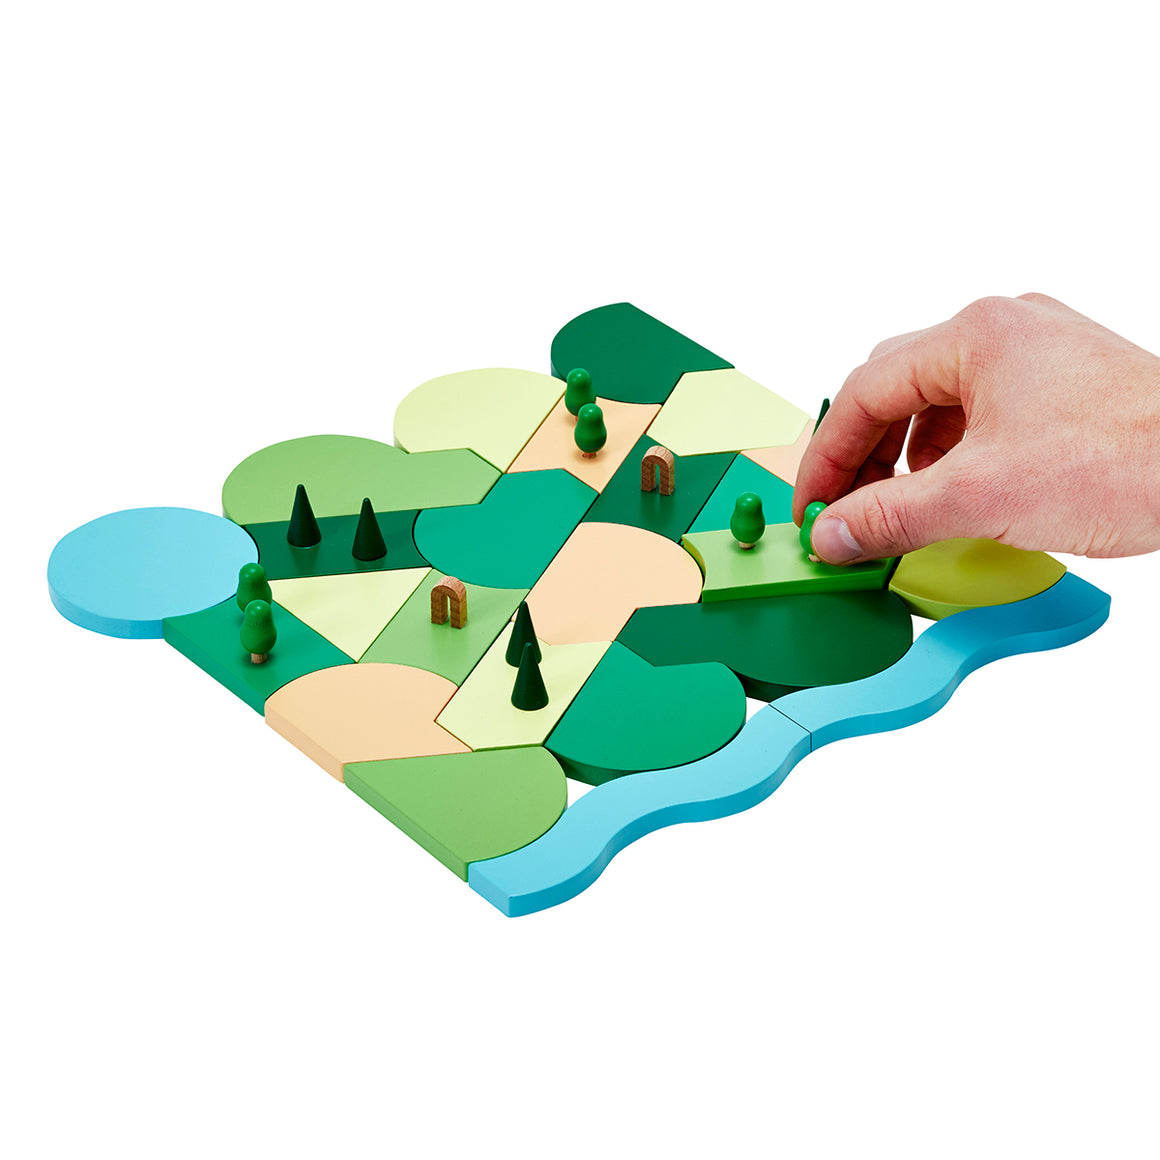 A parkland set of building blocks made of painted wood in greens, blues and sand colours as well as small Trees and arches. A hand is shown positioning the tree.